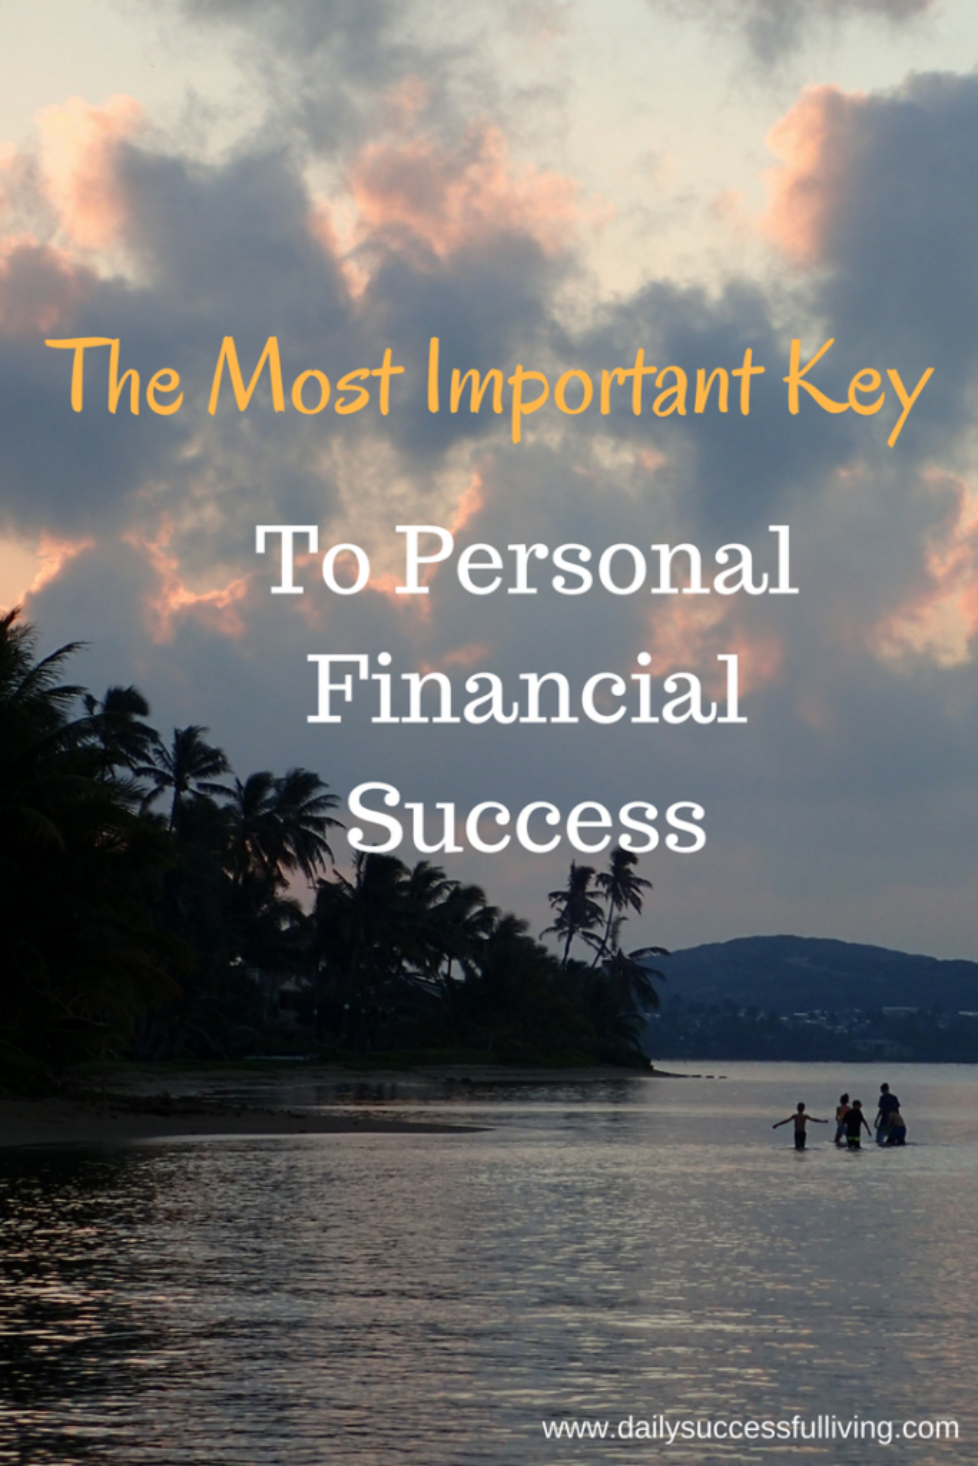 The Most Important Key To Personal Financial Success - How to change your attitude to one of contentment so we can be successful with our personal finances.